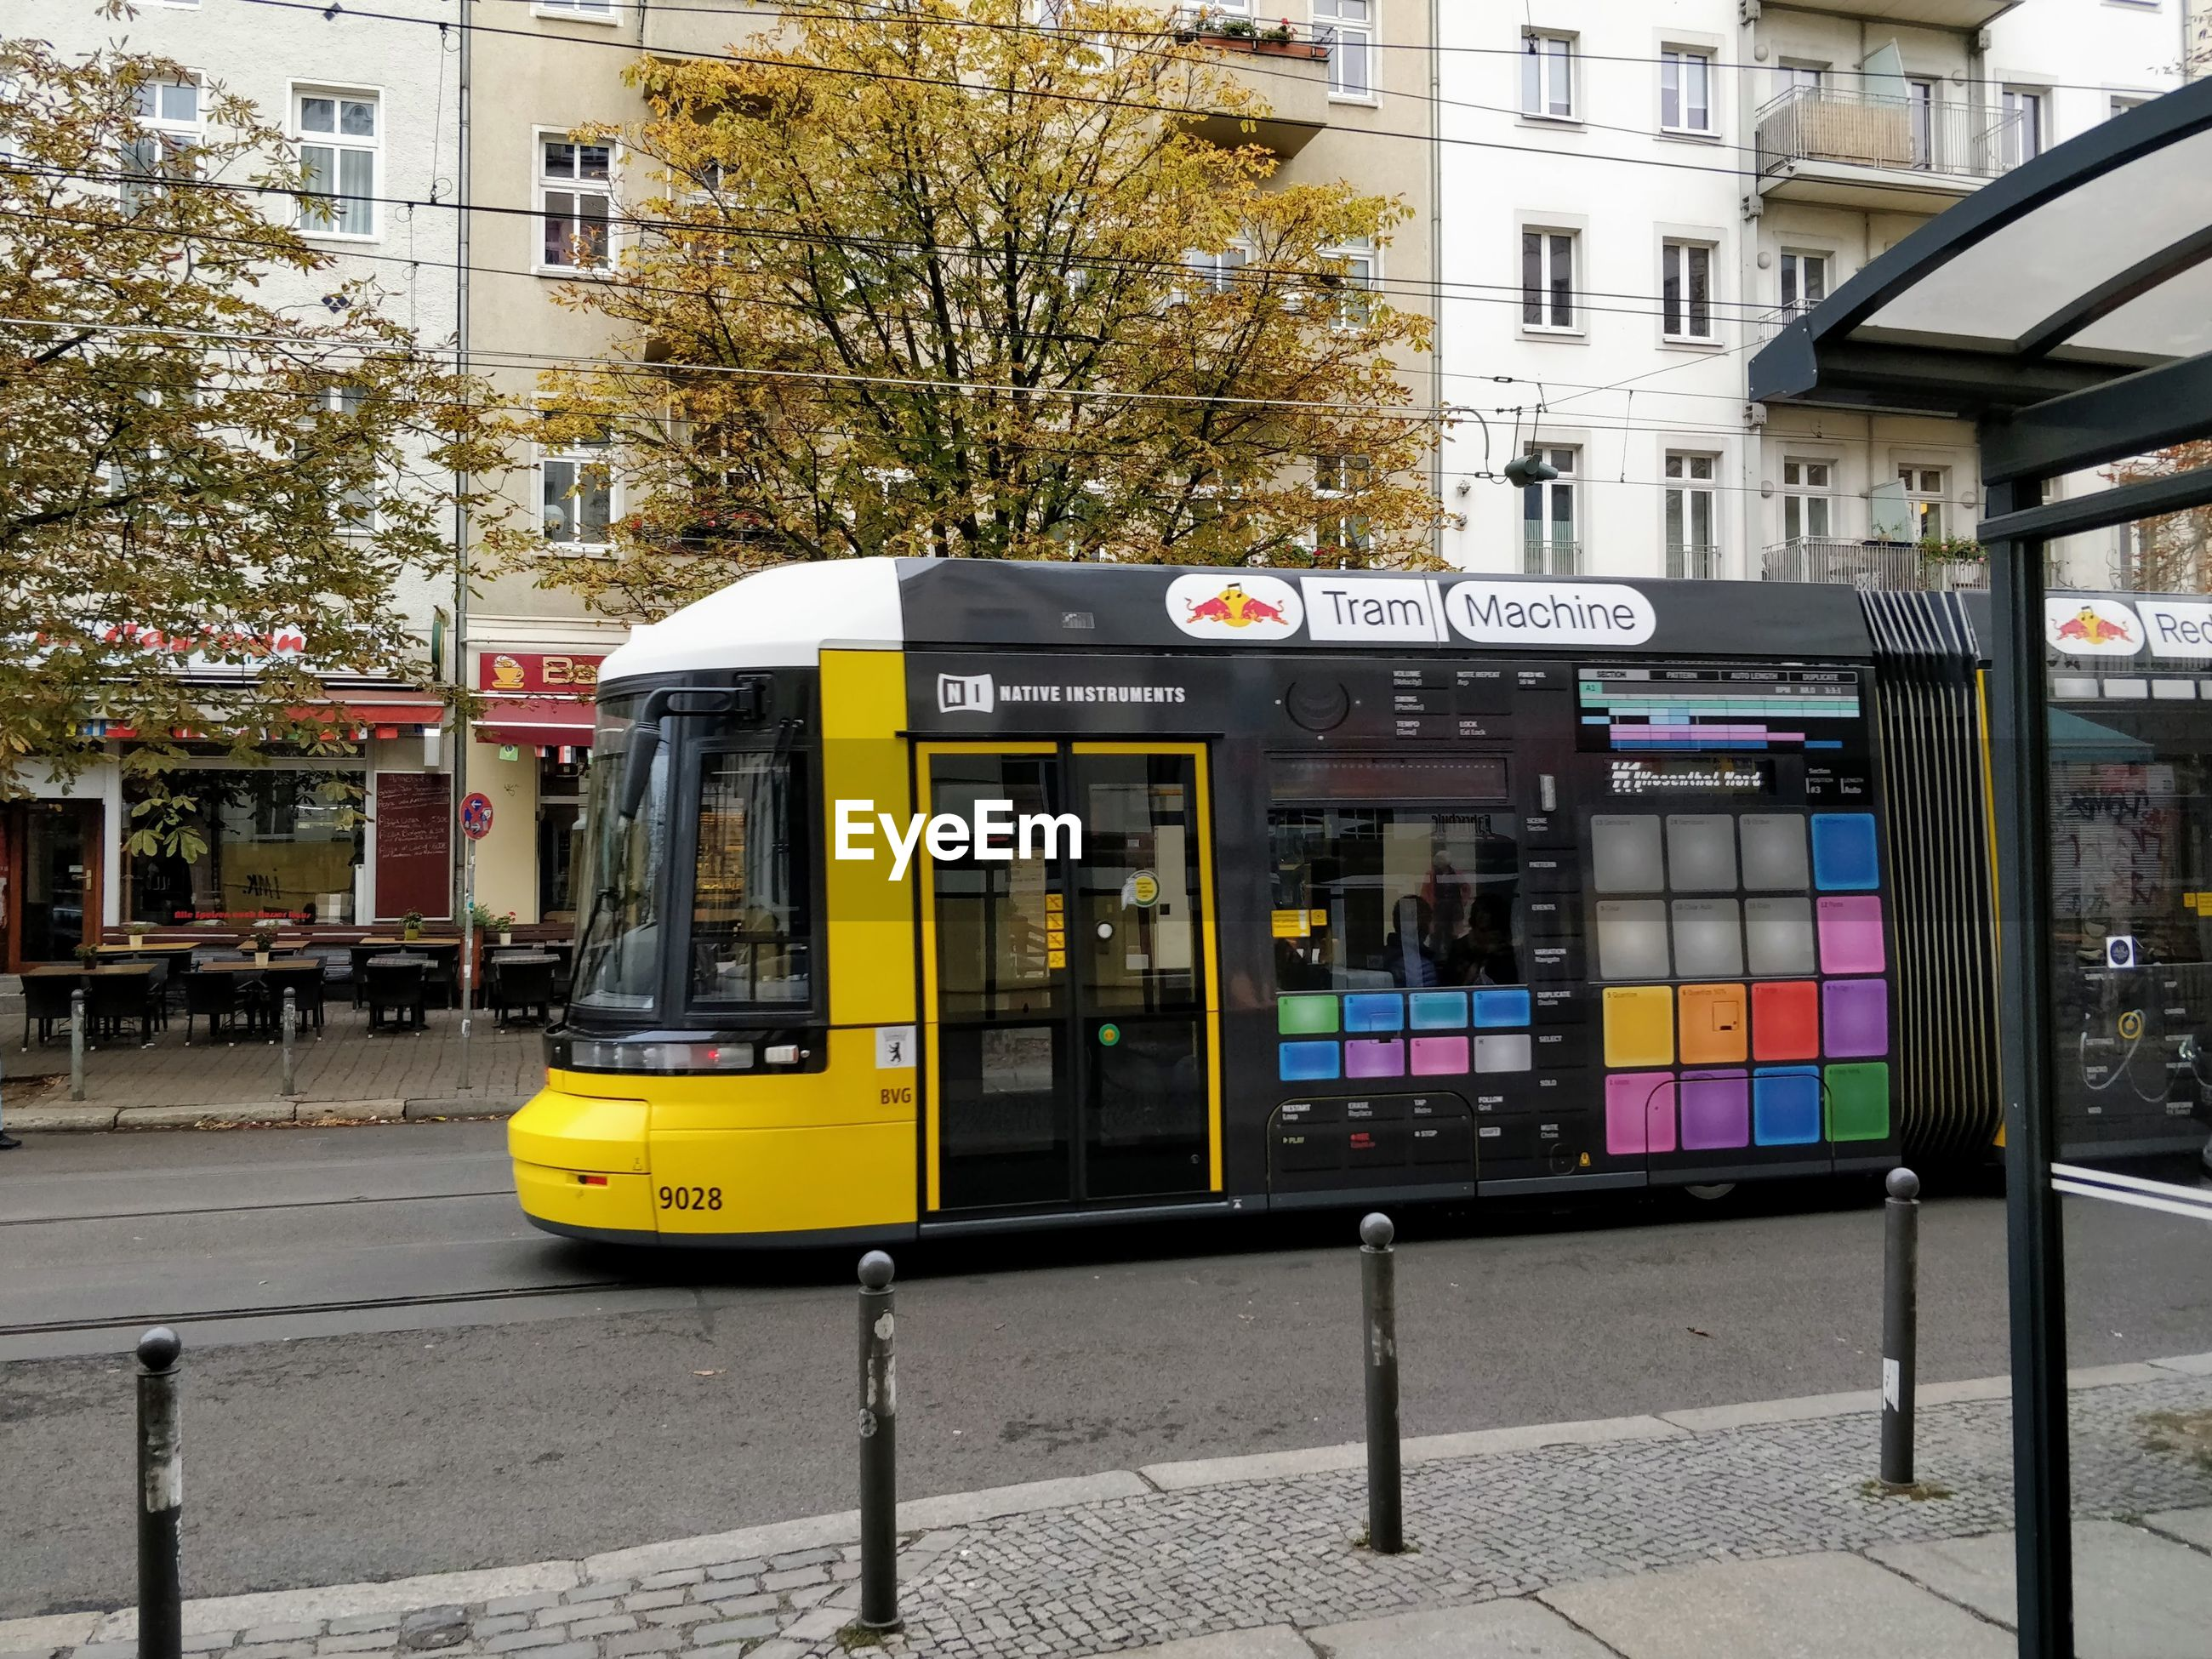 VIEW OF YELLOW TRAIN ON STREET